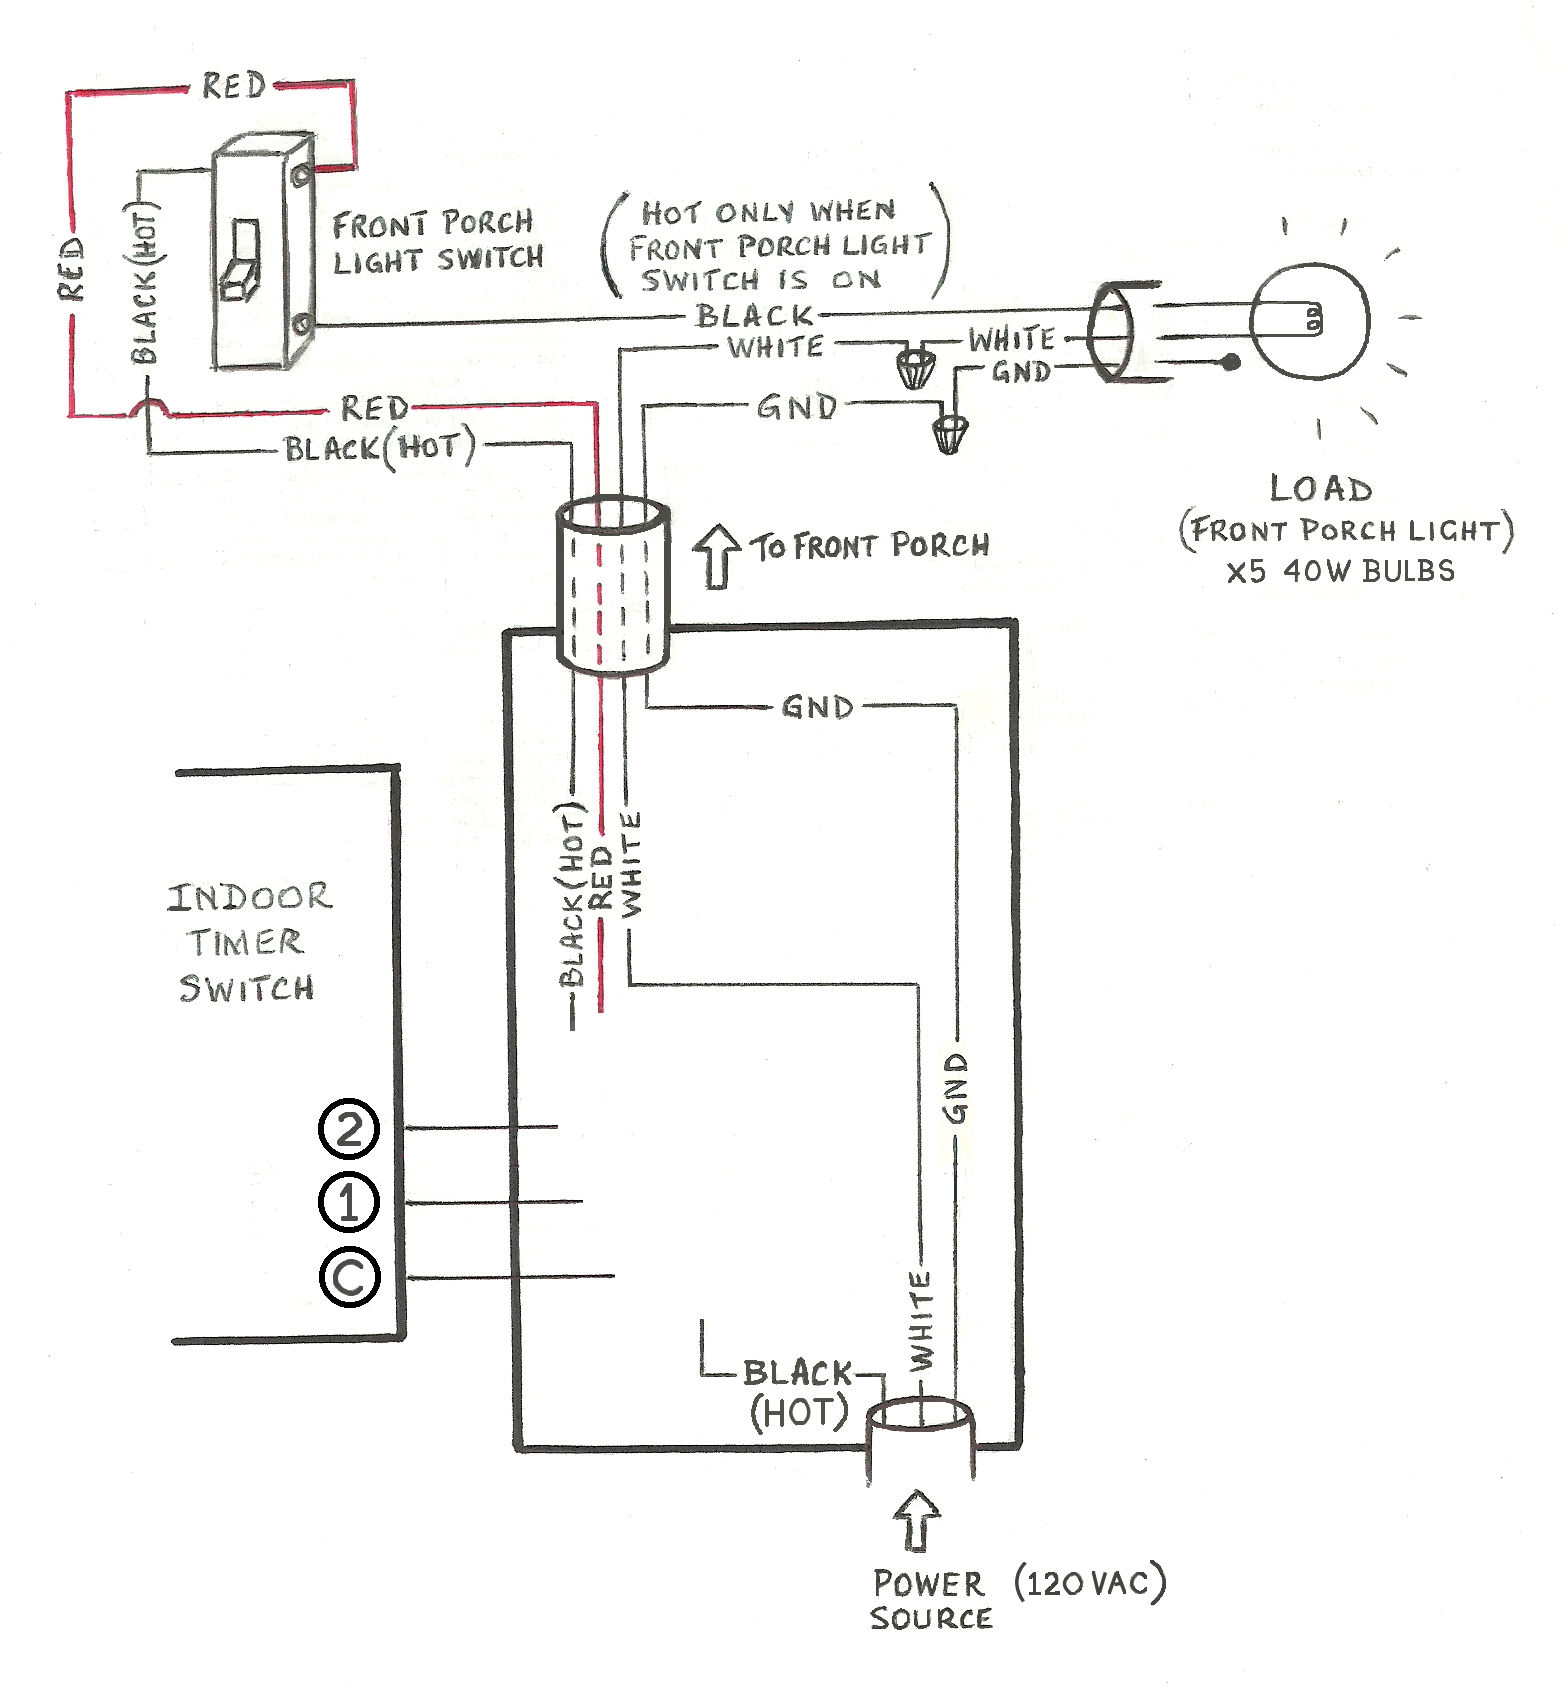 hight resolution of parallel electrical wiring multiple outlets free download wiring wiring diagrams for series and parallel circuits free download